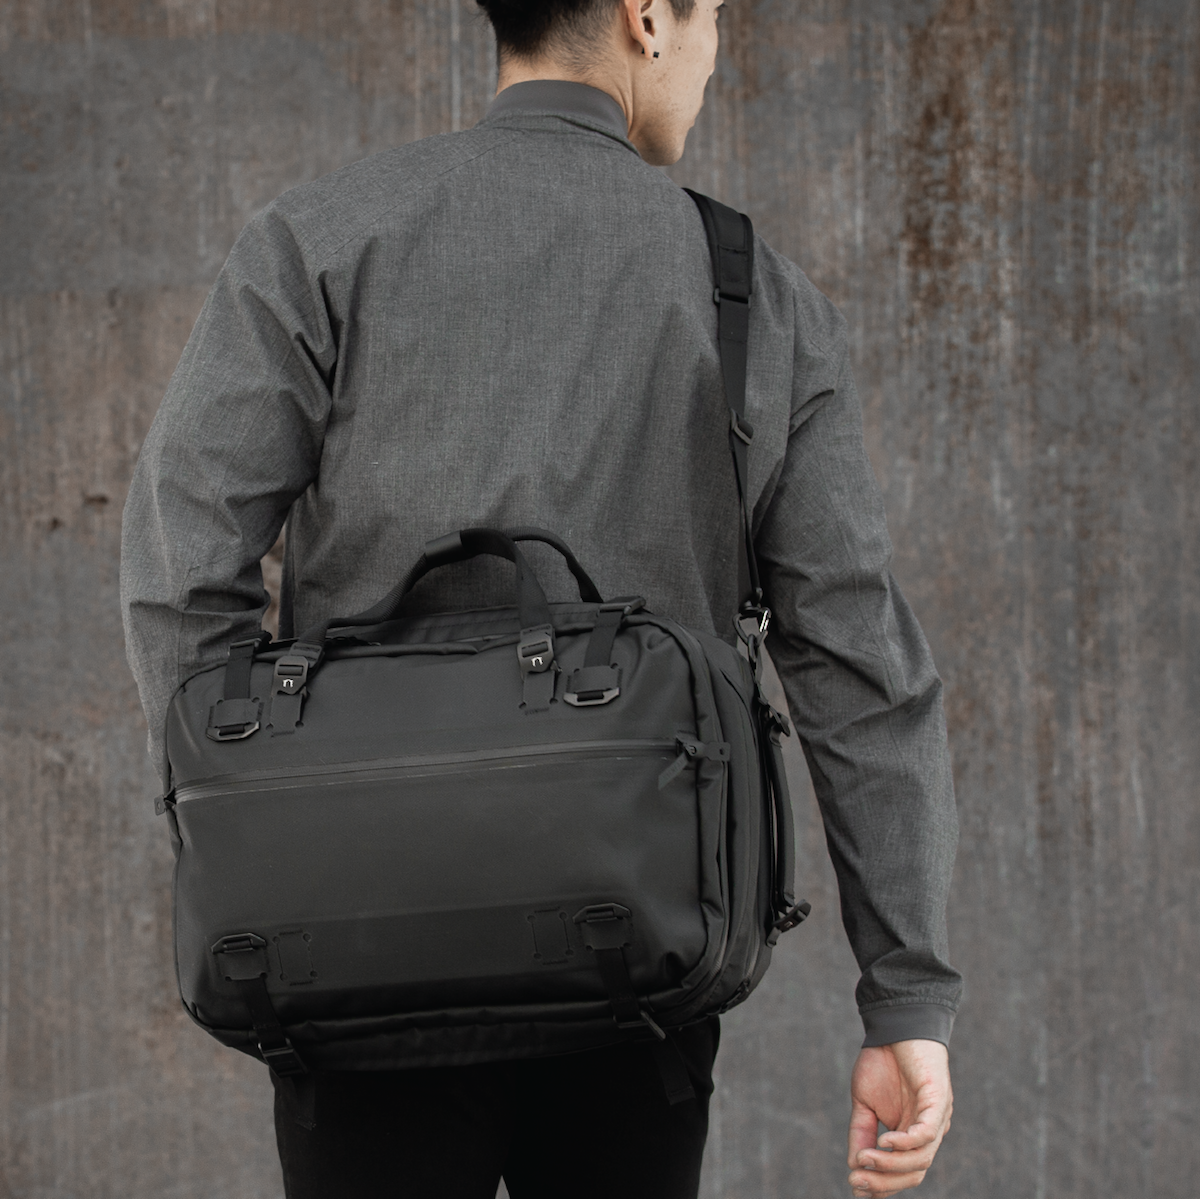 Best_Laptop_Backpack_For_Men_3dbbcdeb-e92d-43be-8938-9500c0af8146_1200x1199.png